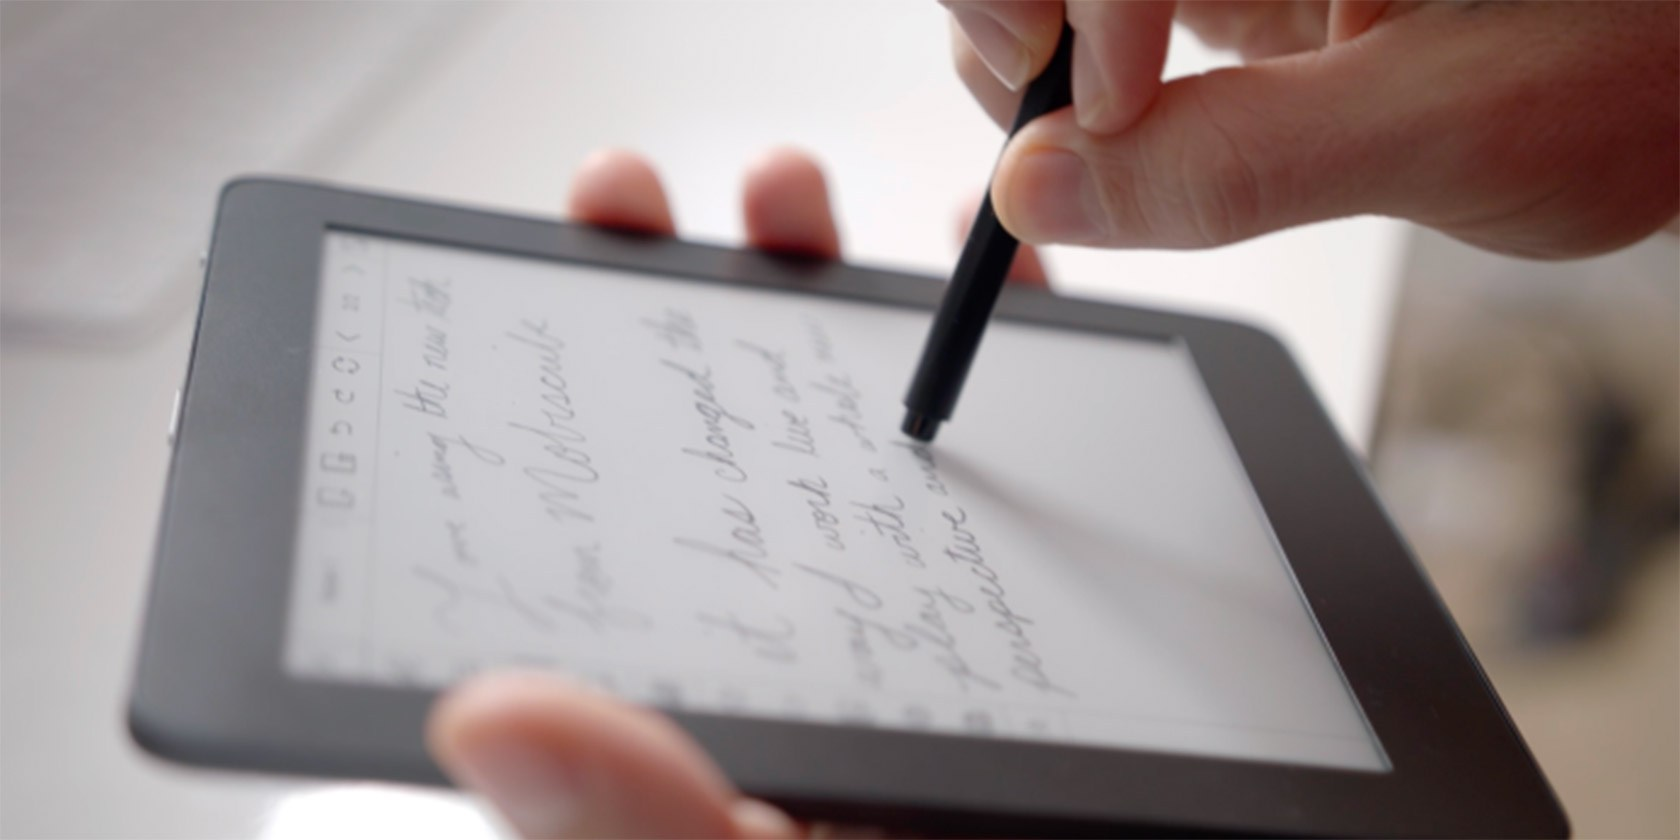 MobiScribe: An E-Ink Display That Writes Like Paper